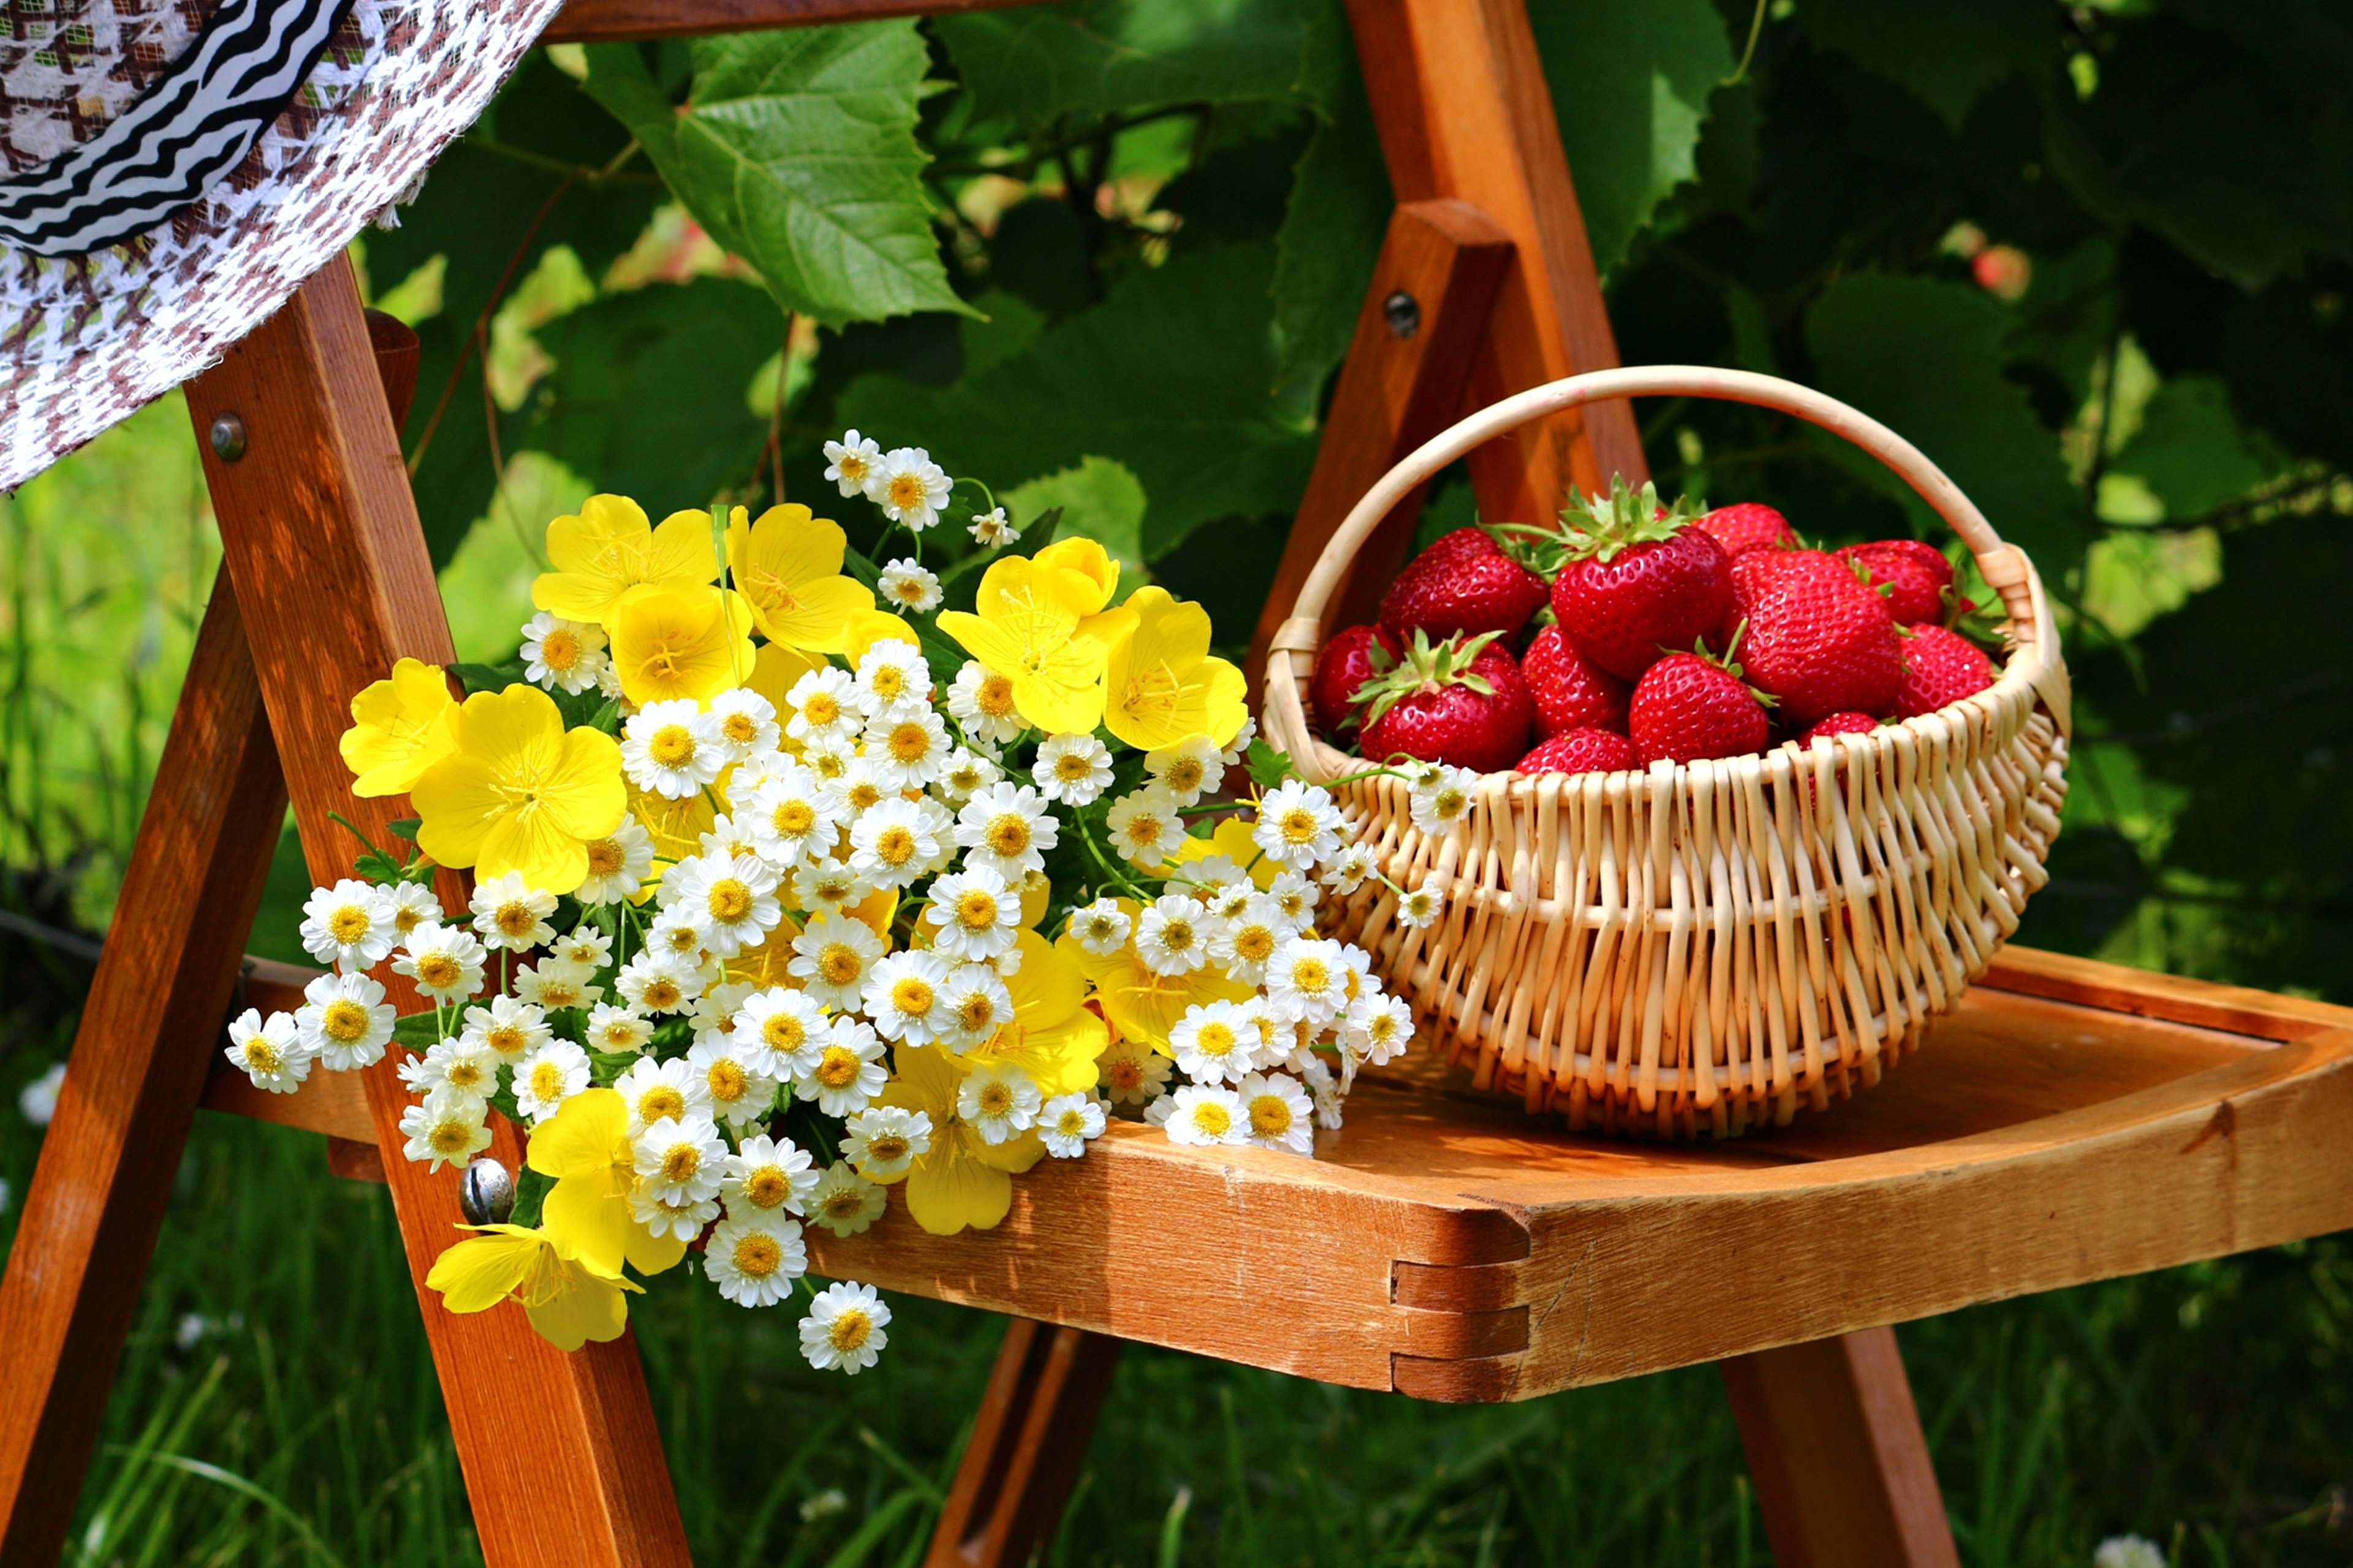 Flowers and fruits wallpapers - Basket Flowers Table Fruits Spring Strawberries Garden Food Wallpaper 3840x2559 658796 Wallpaperup